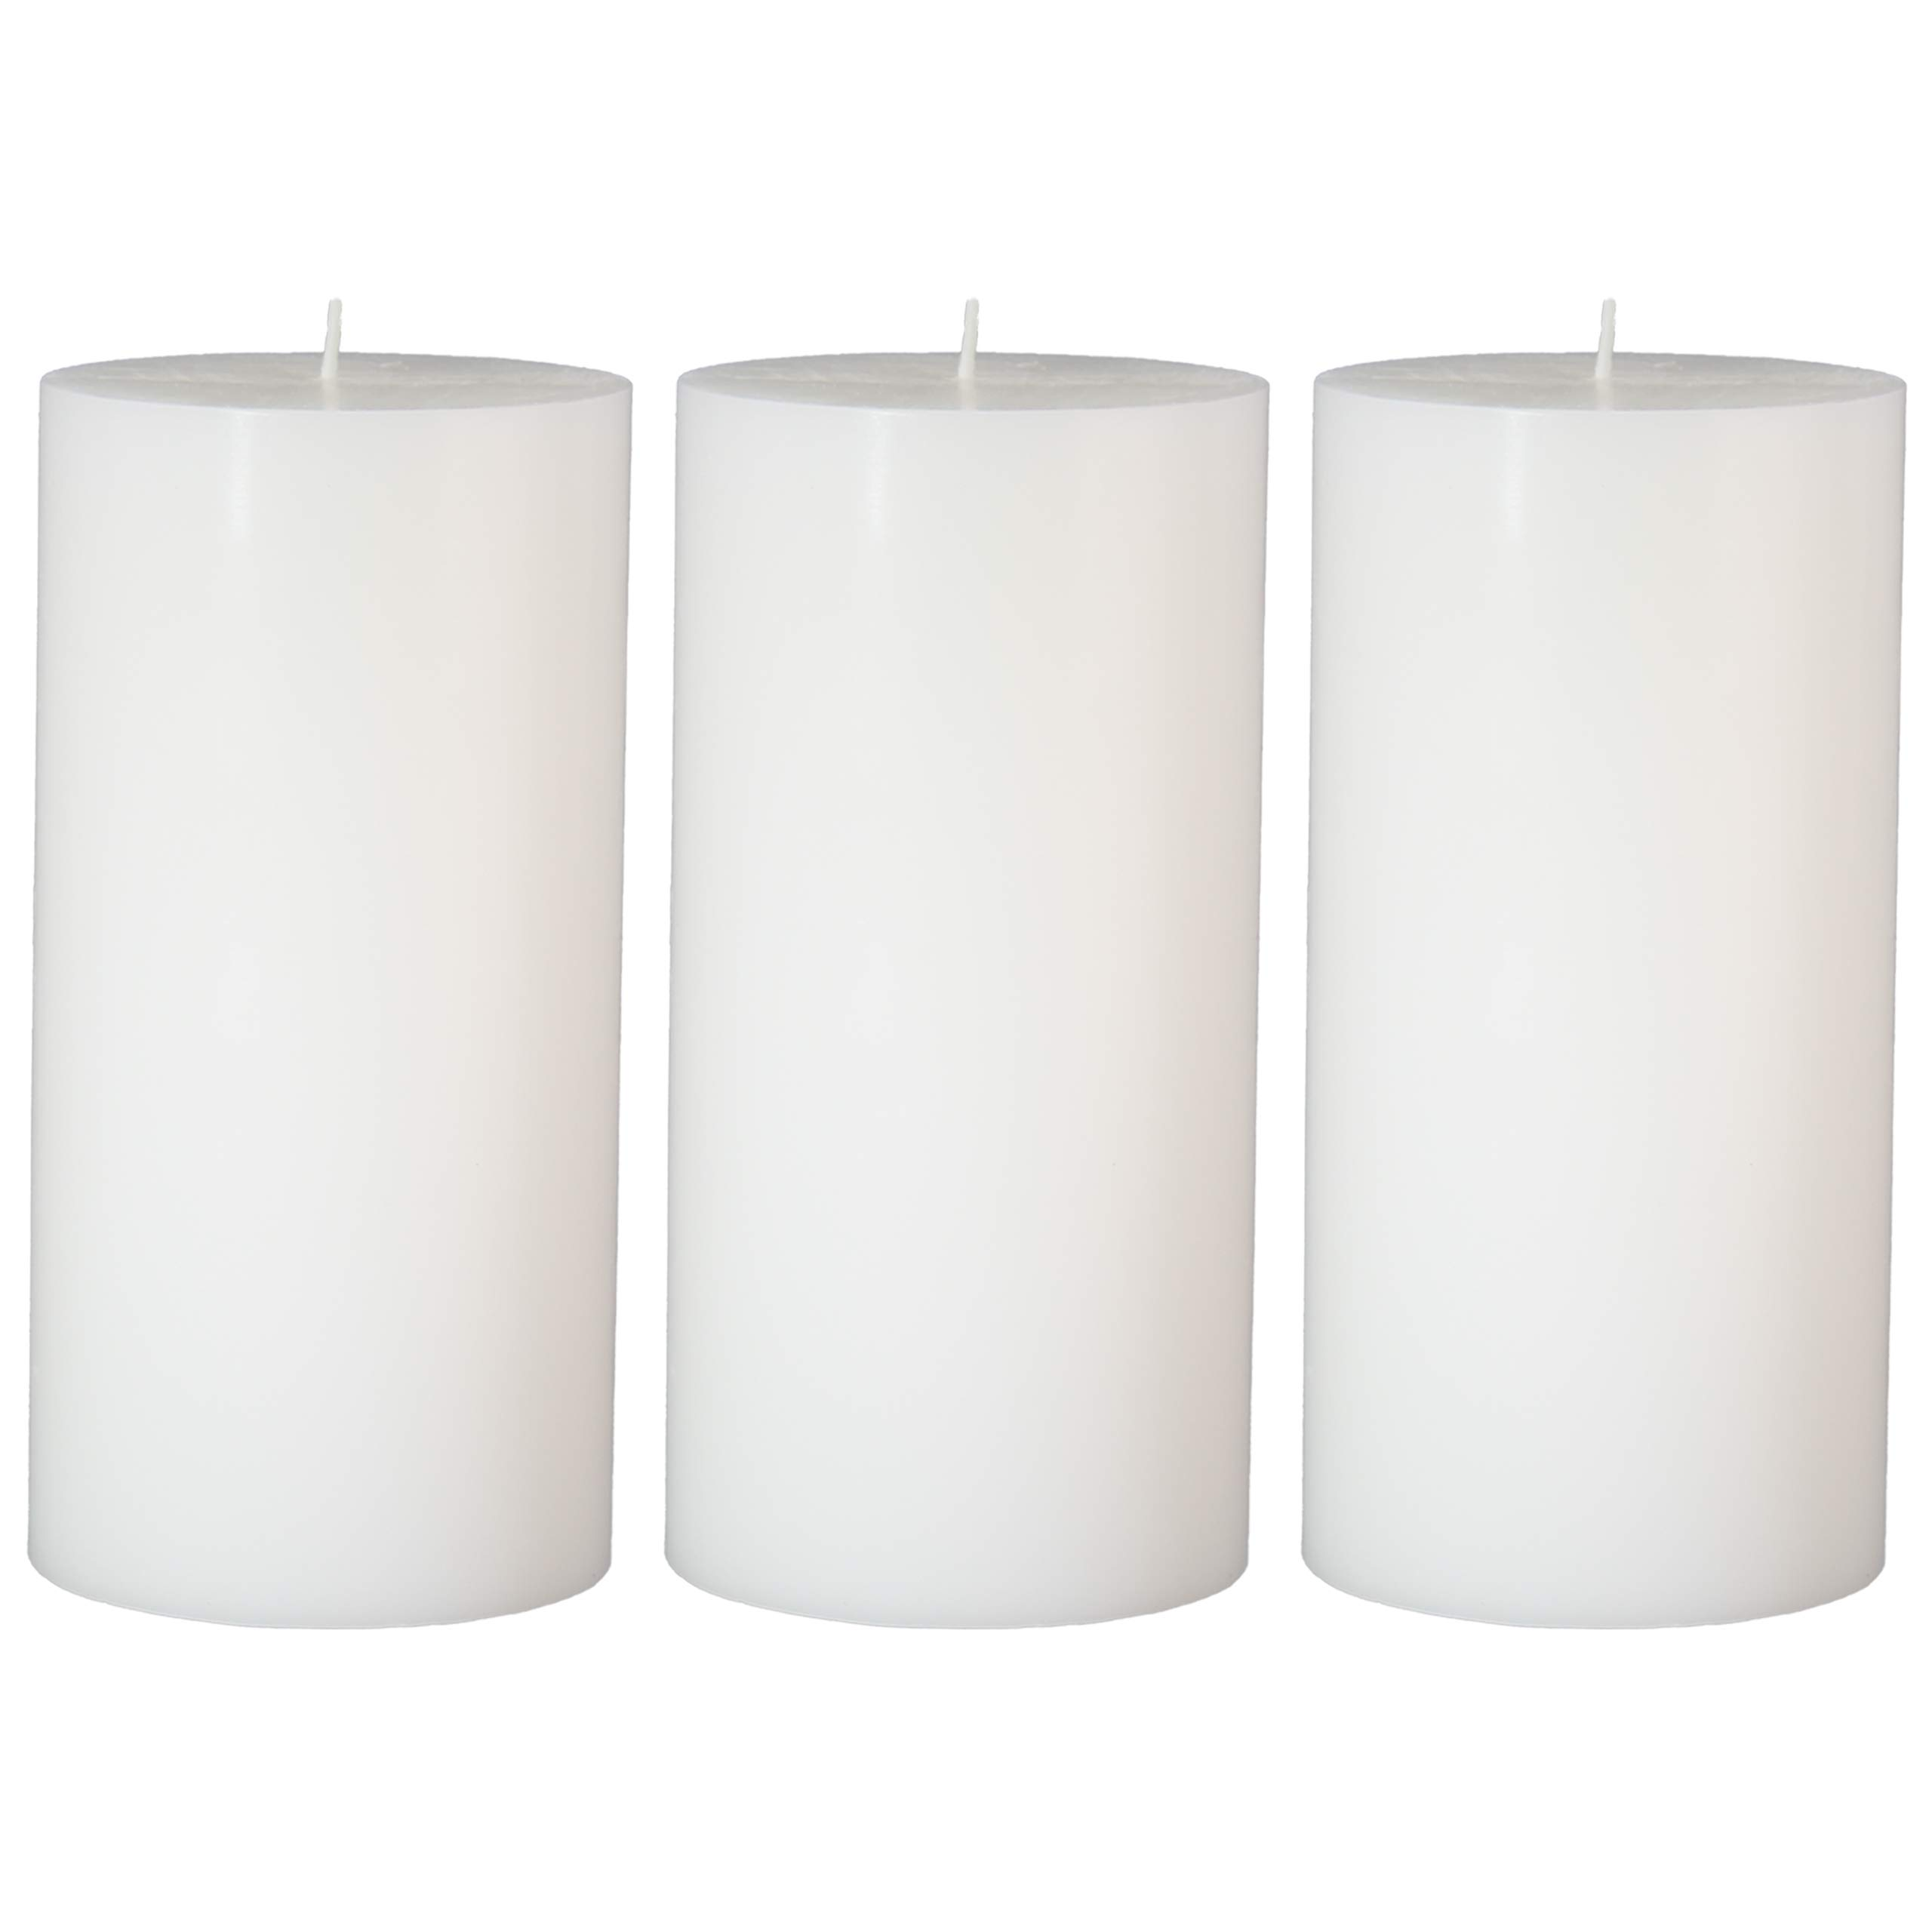 CandleNScent 3x6 White Pillar Candles Hand Poured Unscented (Pack of 3)